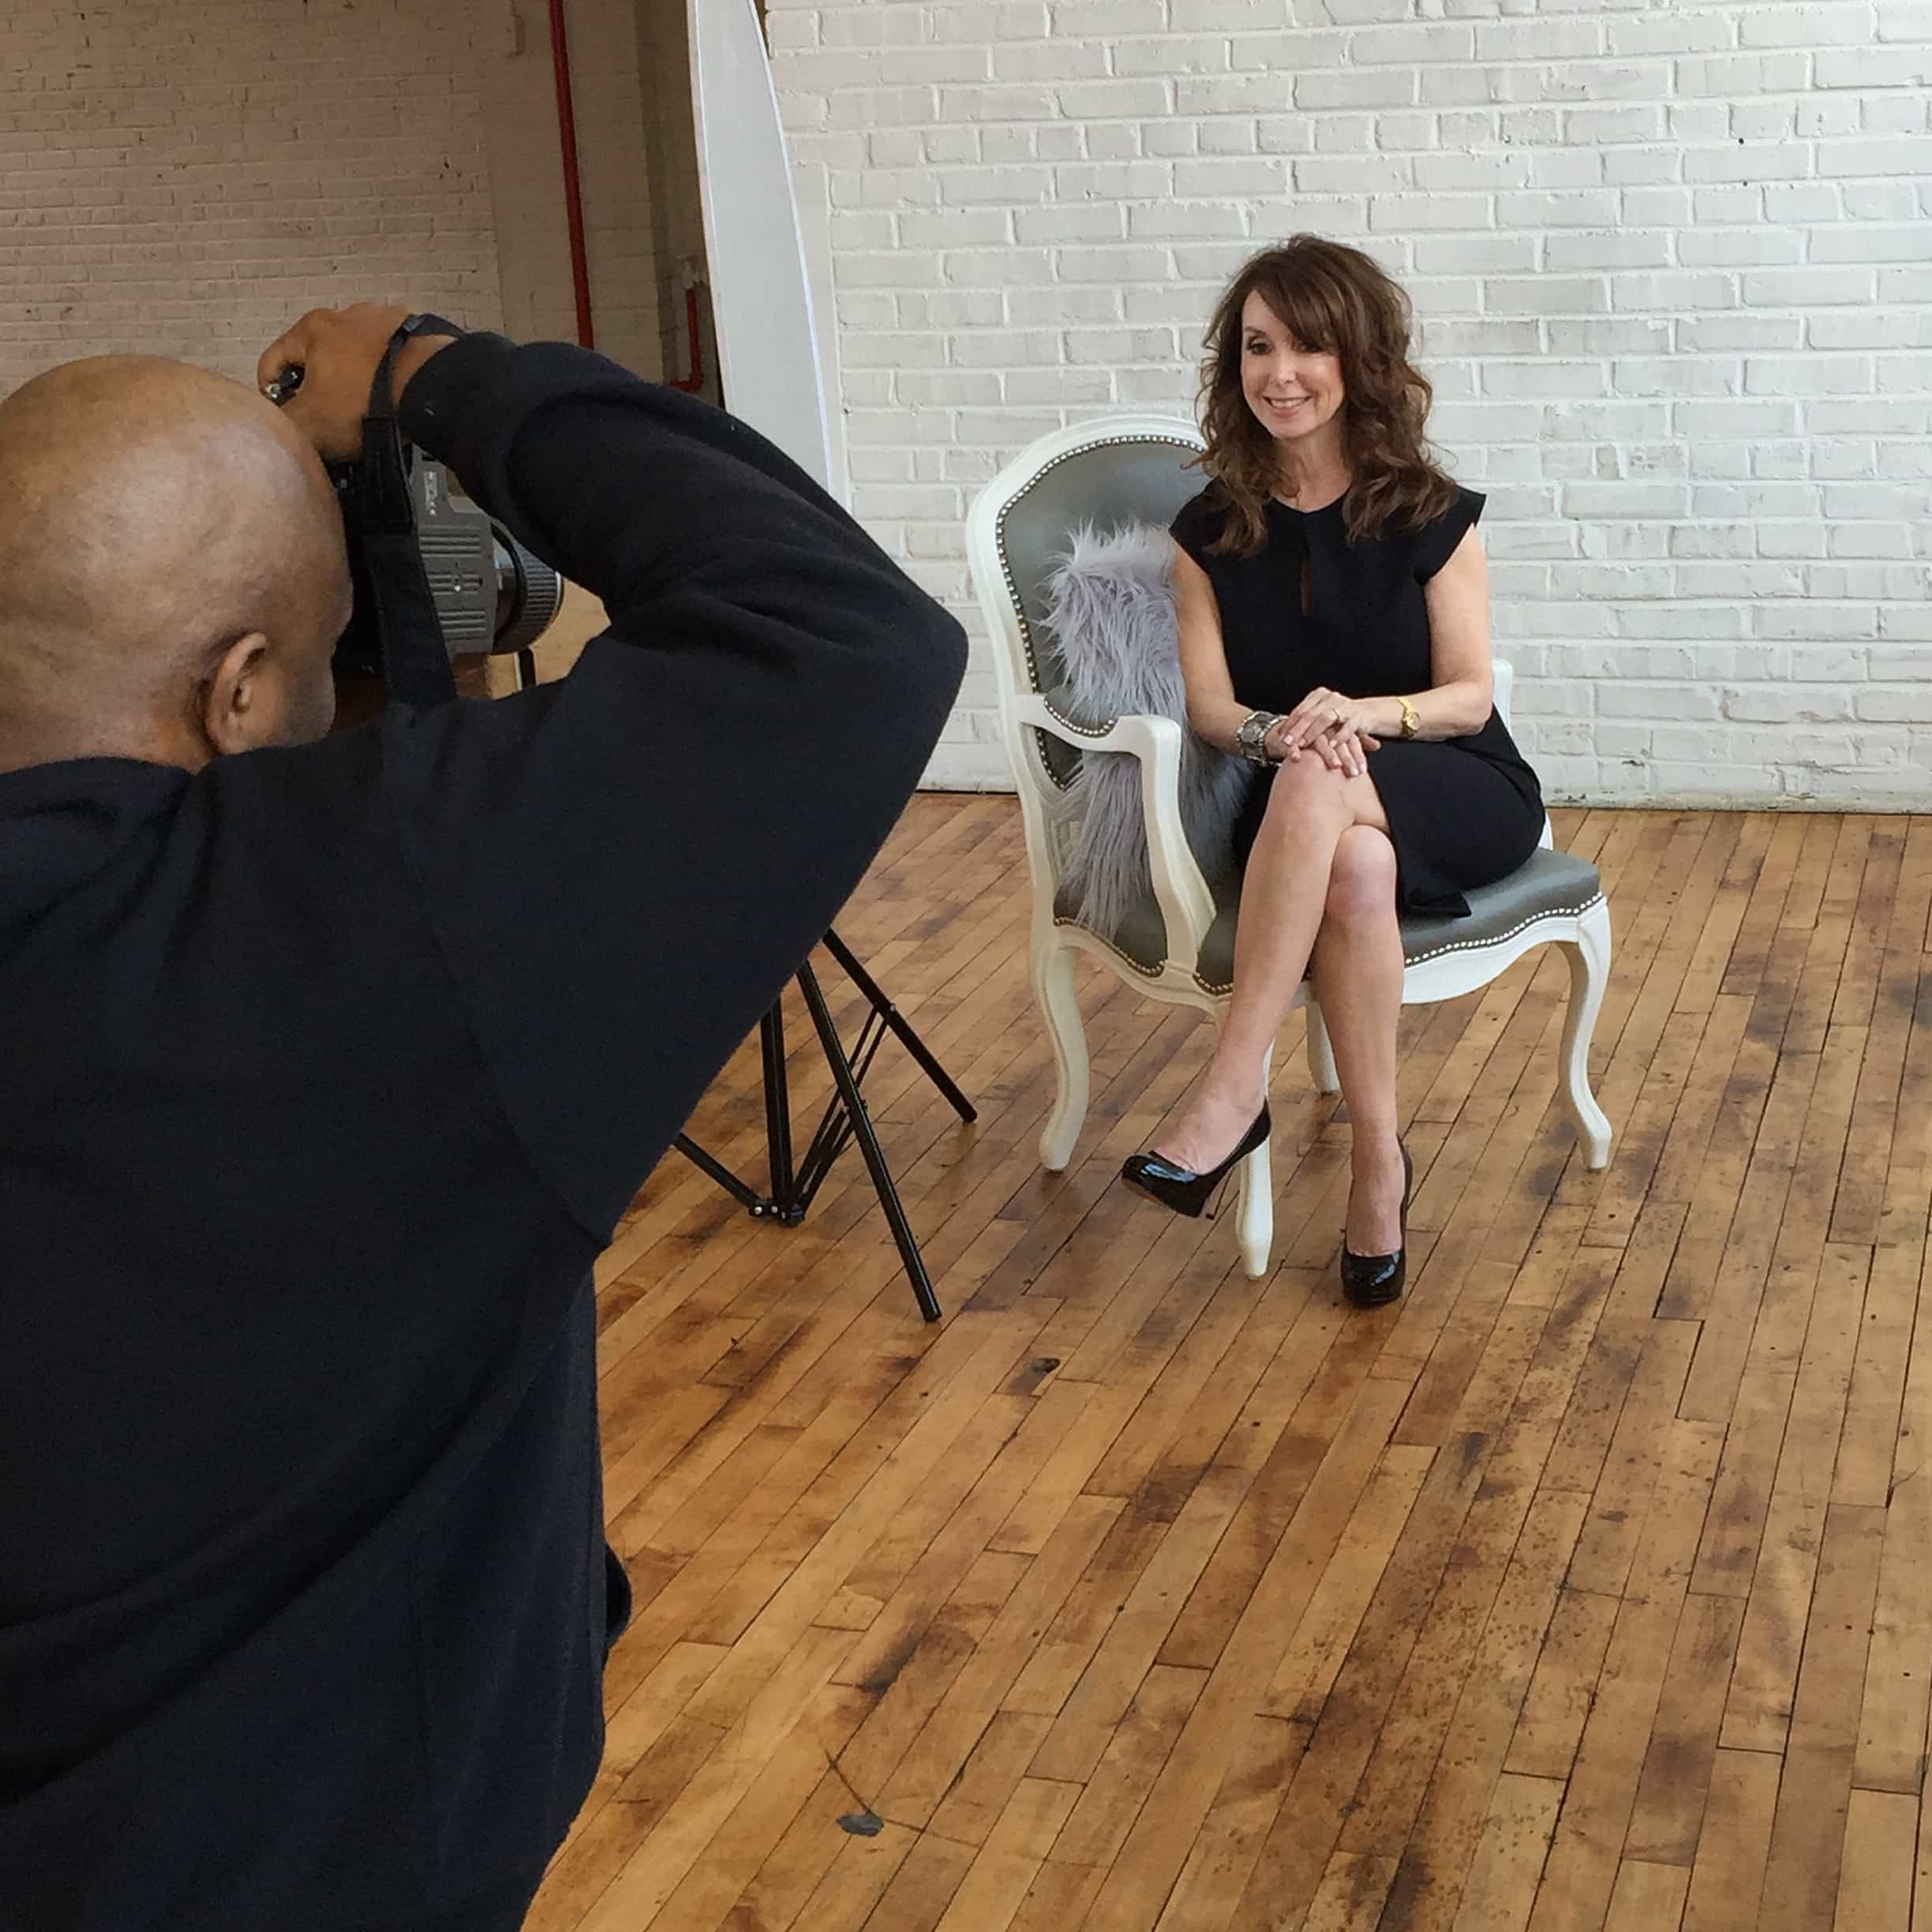 TV producer Donna Benner's photo session with prominent Philadelphia photographer Whitney Thomas